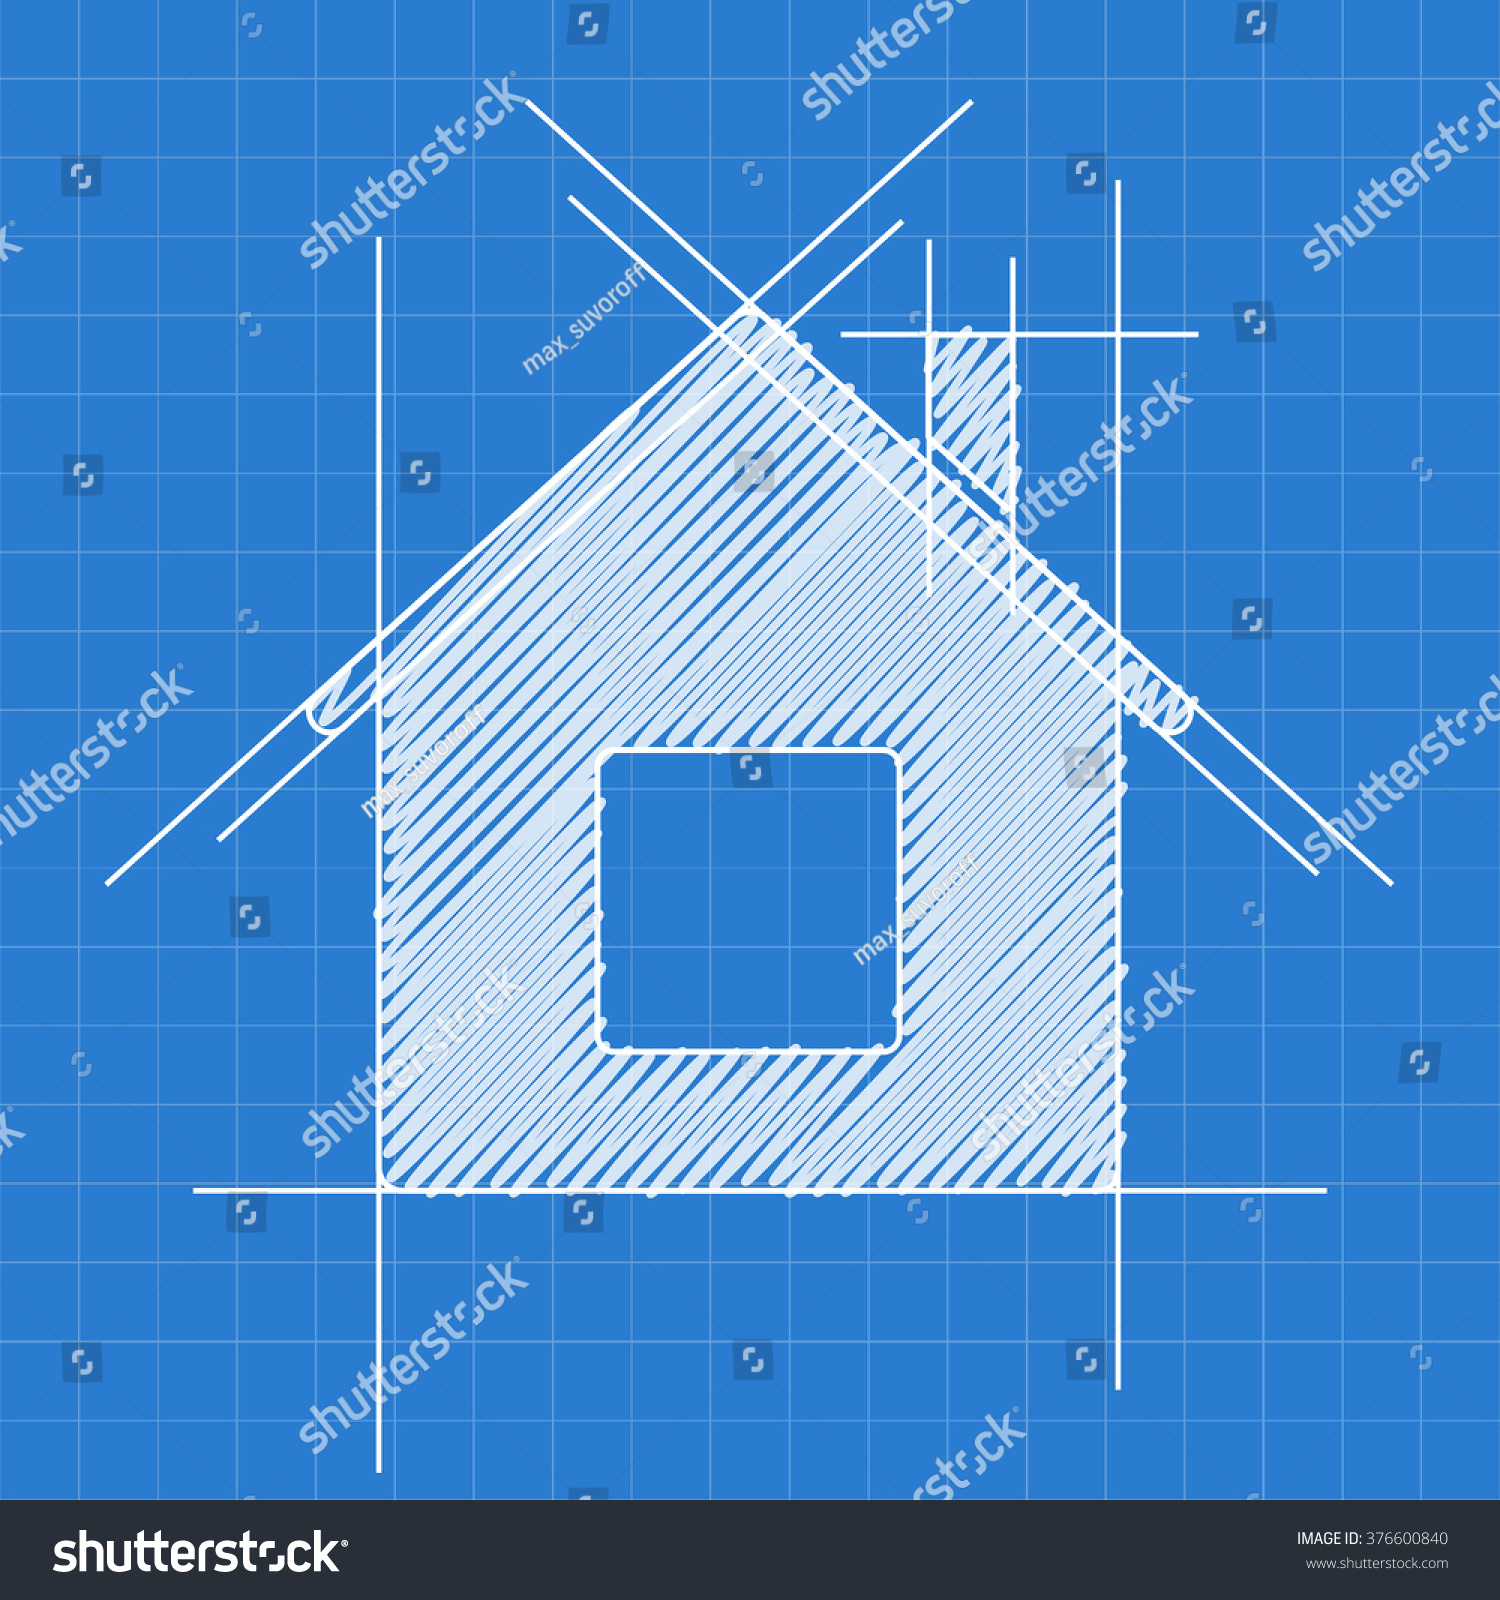 House blueprint logo sketch stock vector 376600840 for House blueprint images